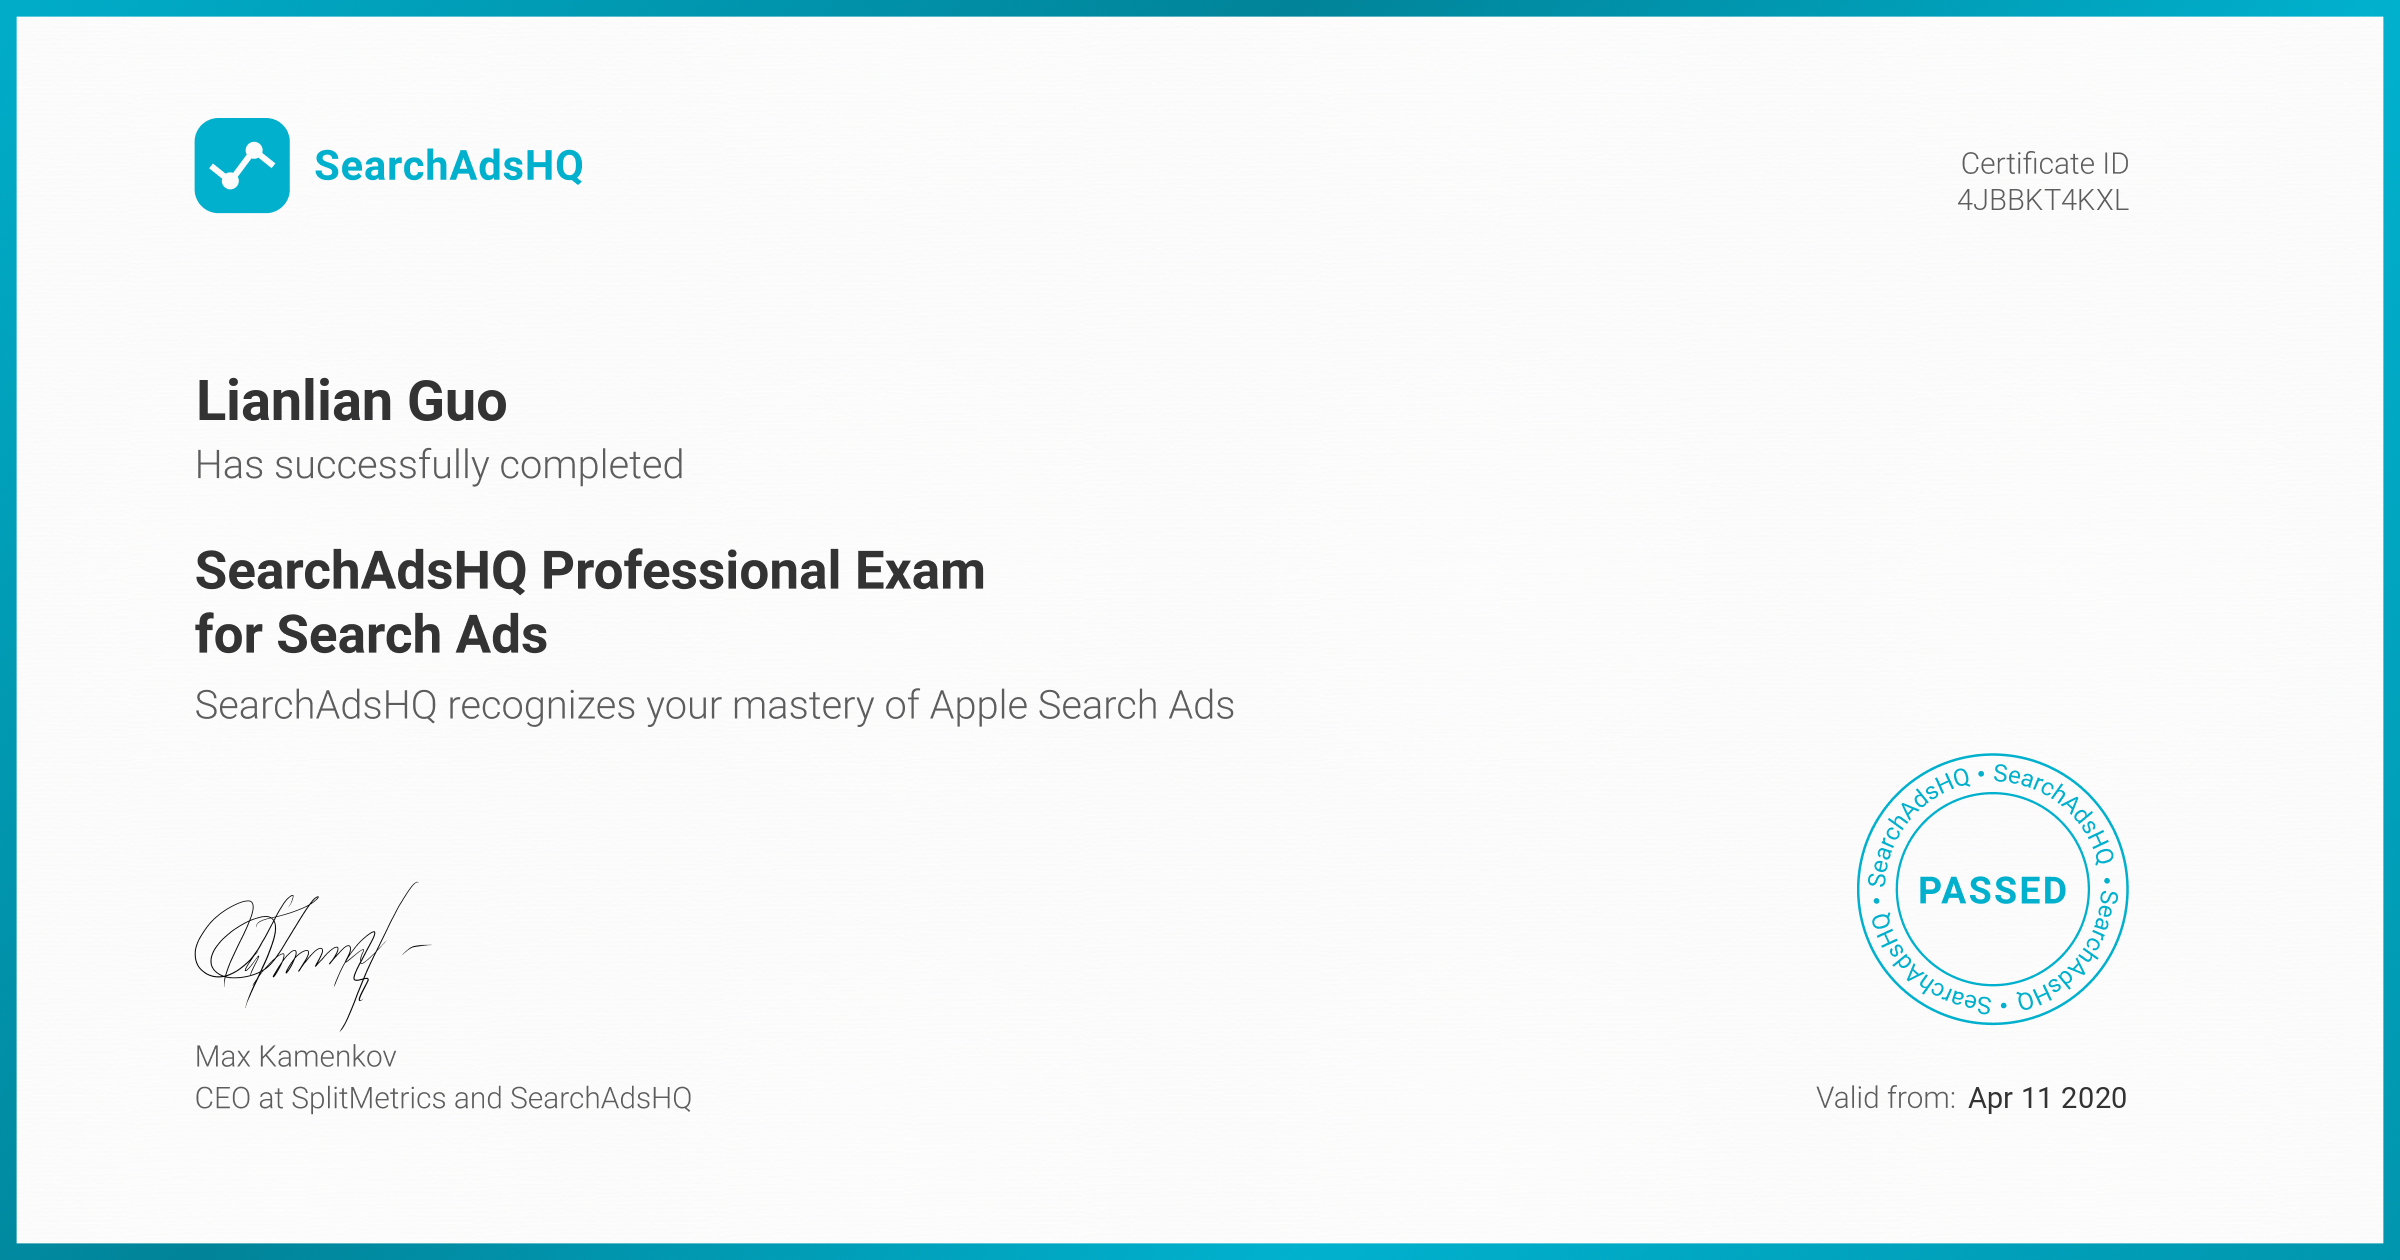 Certificate for Lianlian Guo | SearchAdsHQ Professional Exam for Search Ads